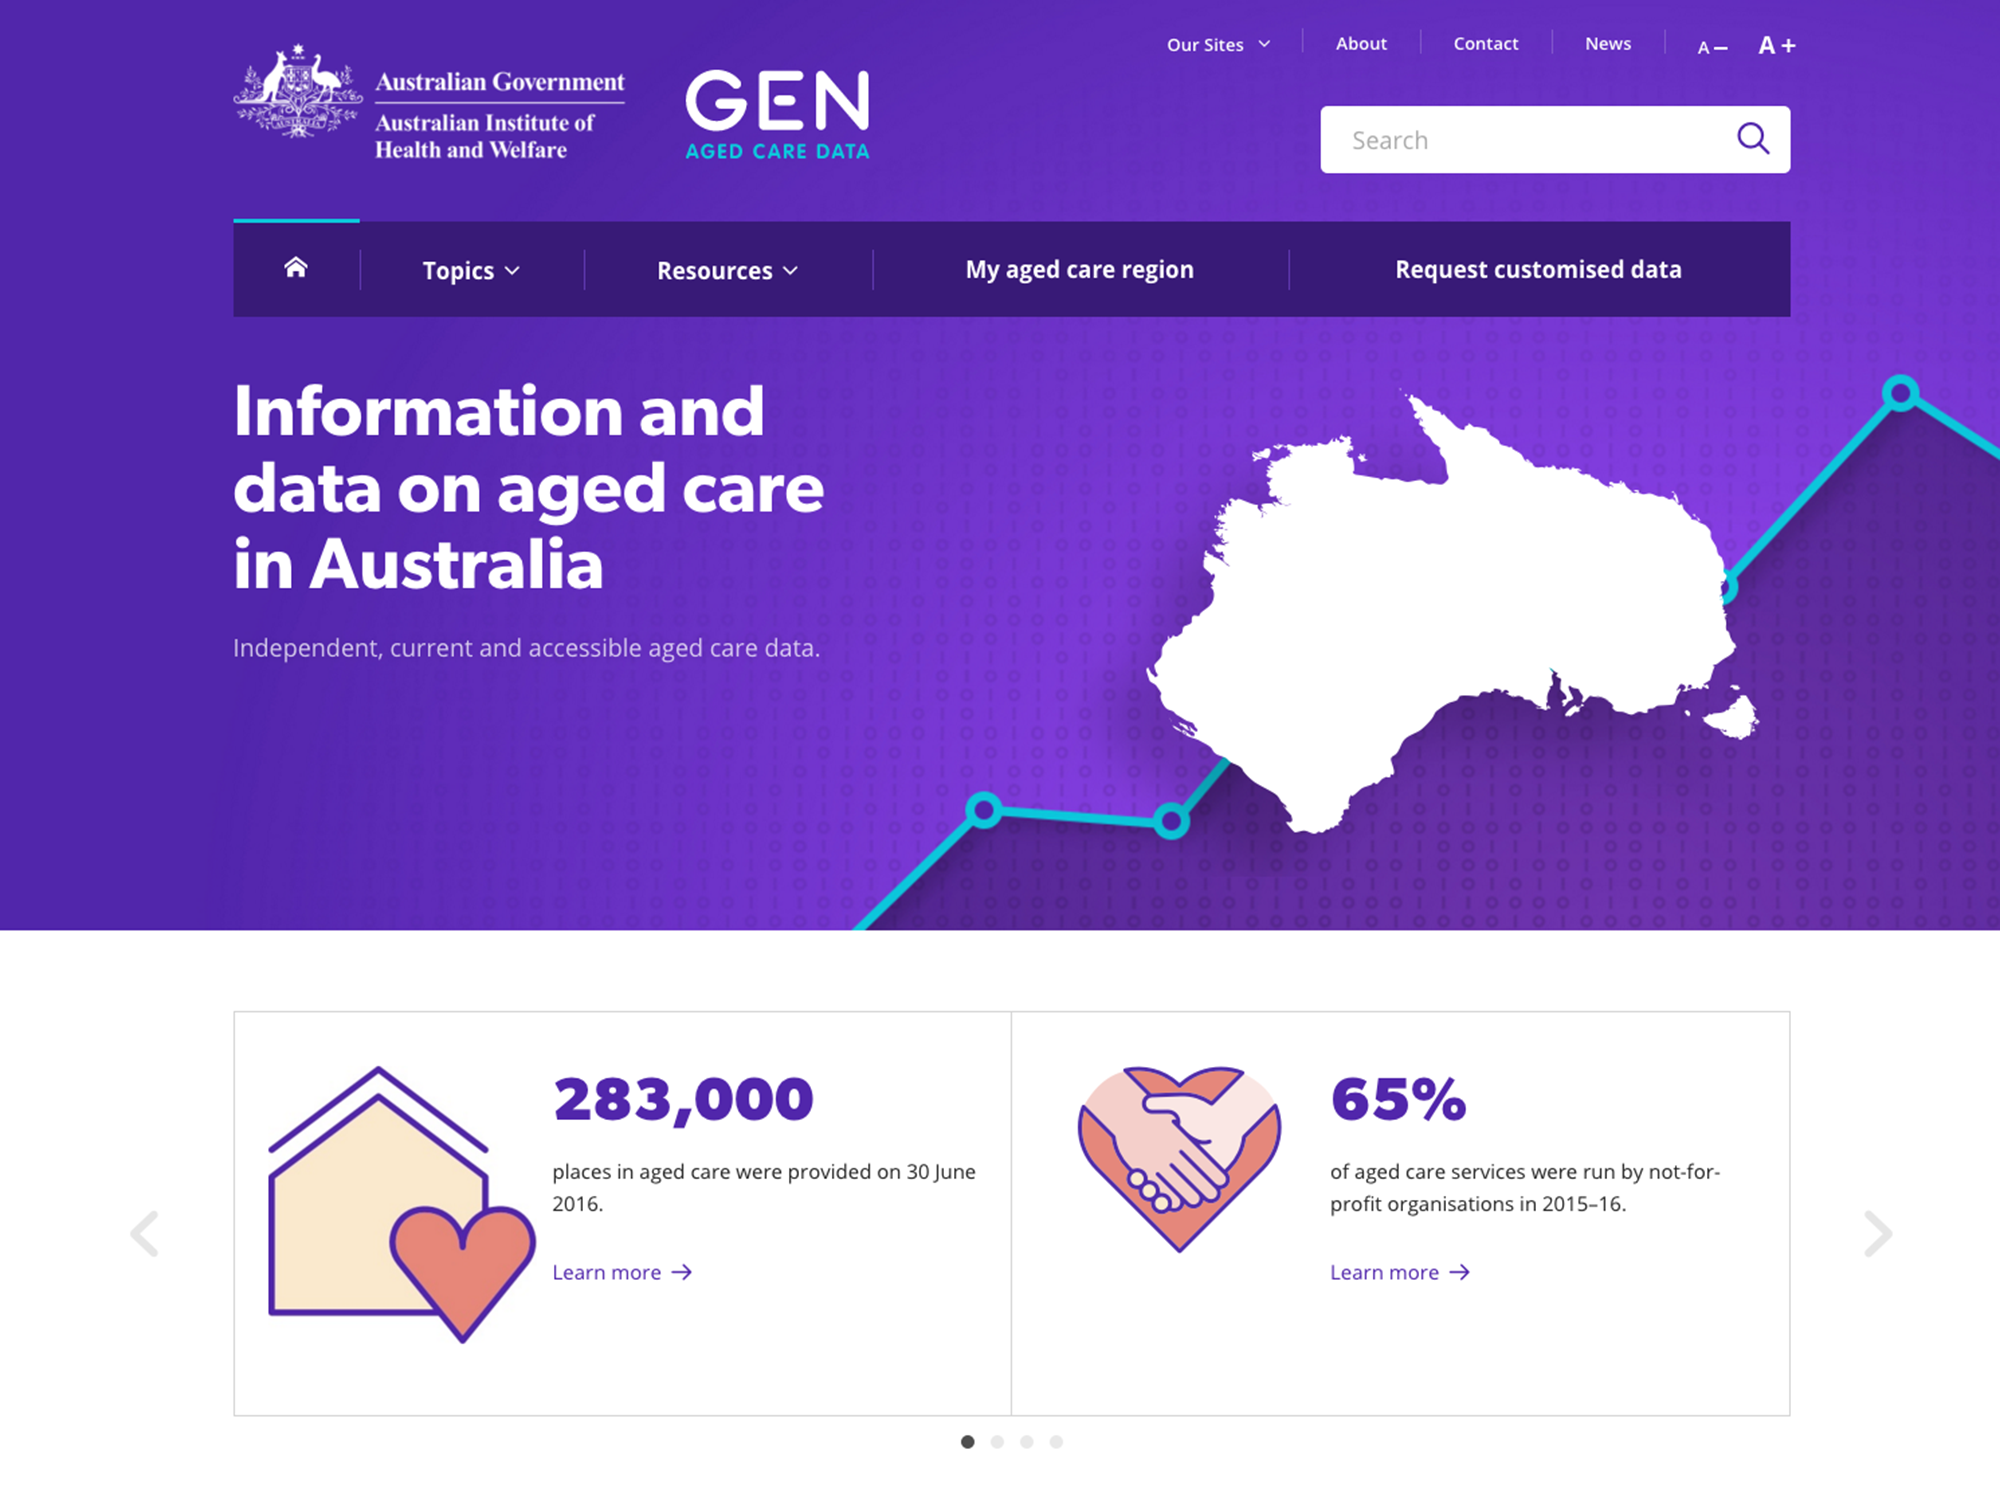 New user-friendly aged care website GEN activated coinciding with investigation into residential aged care costs (Source: Shutterstock)